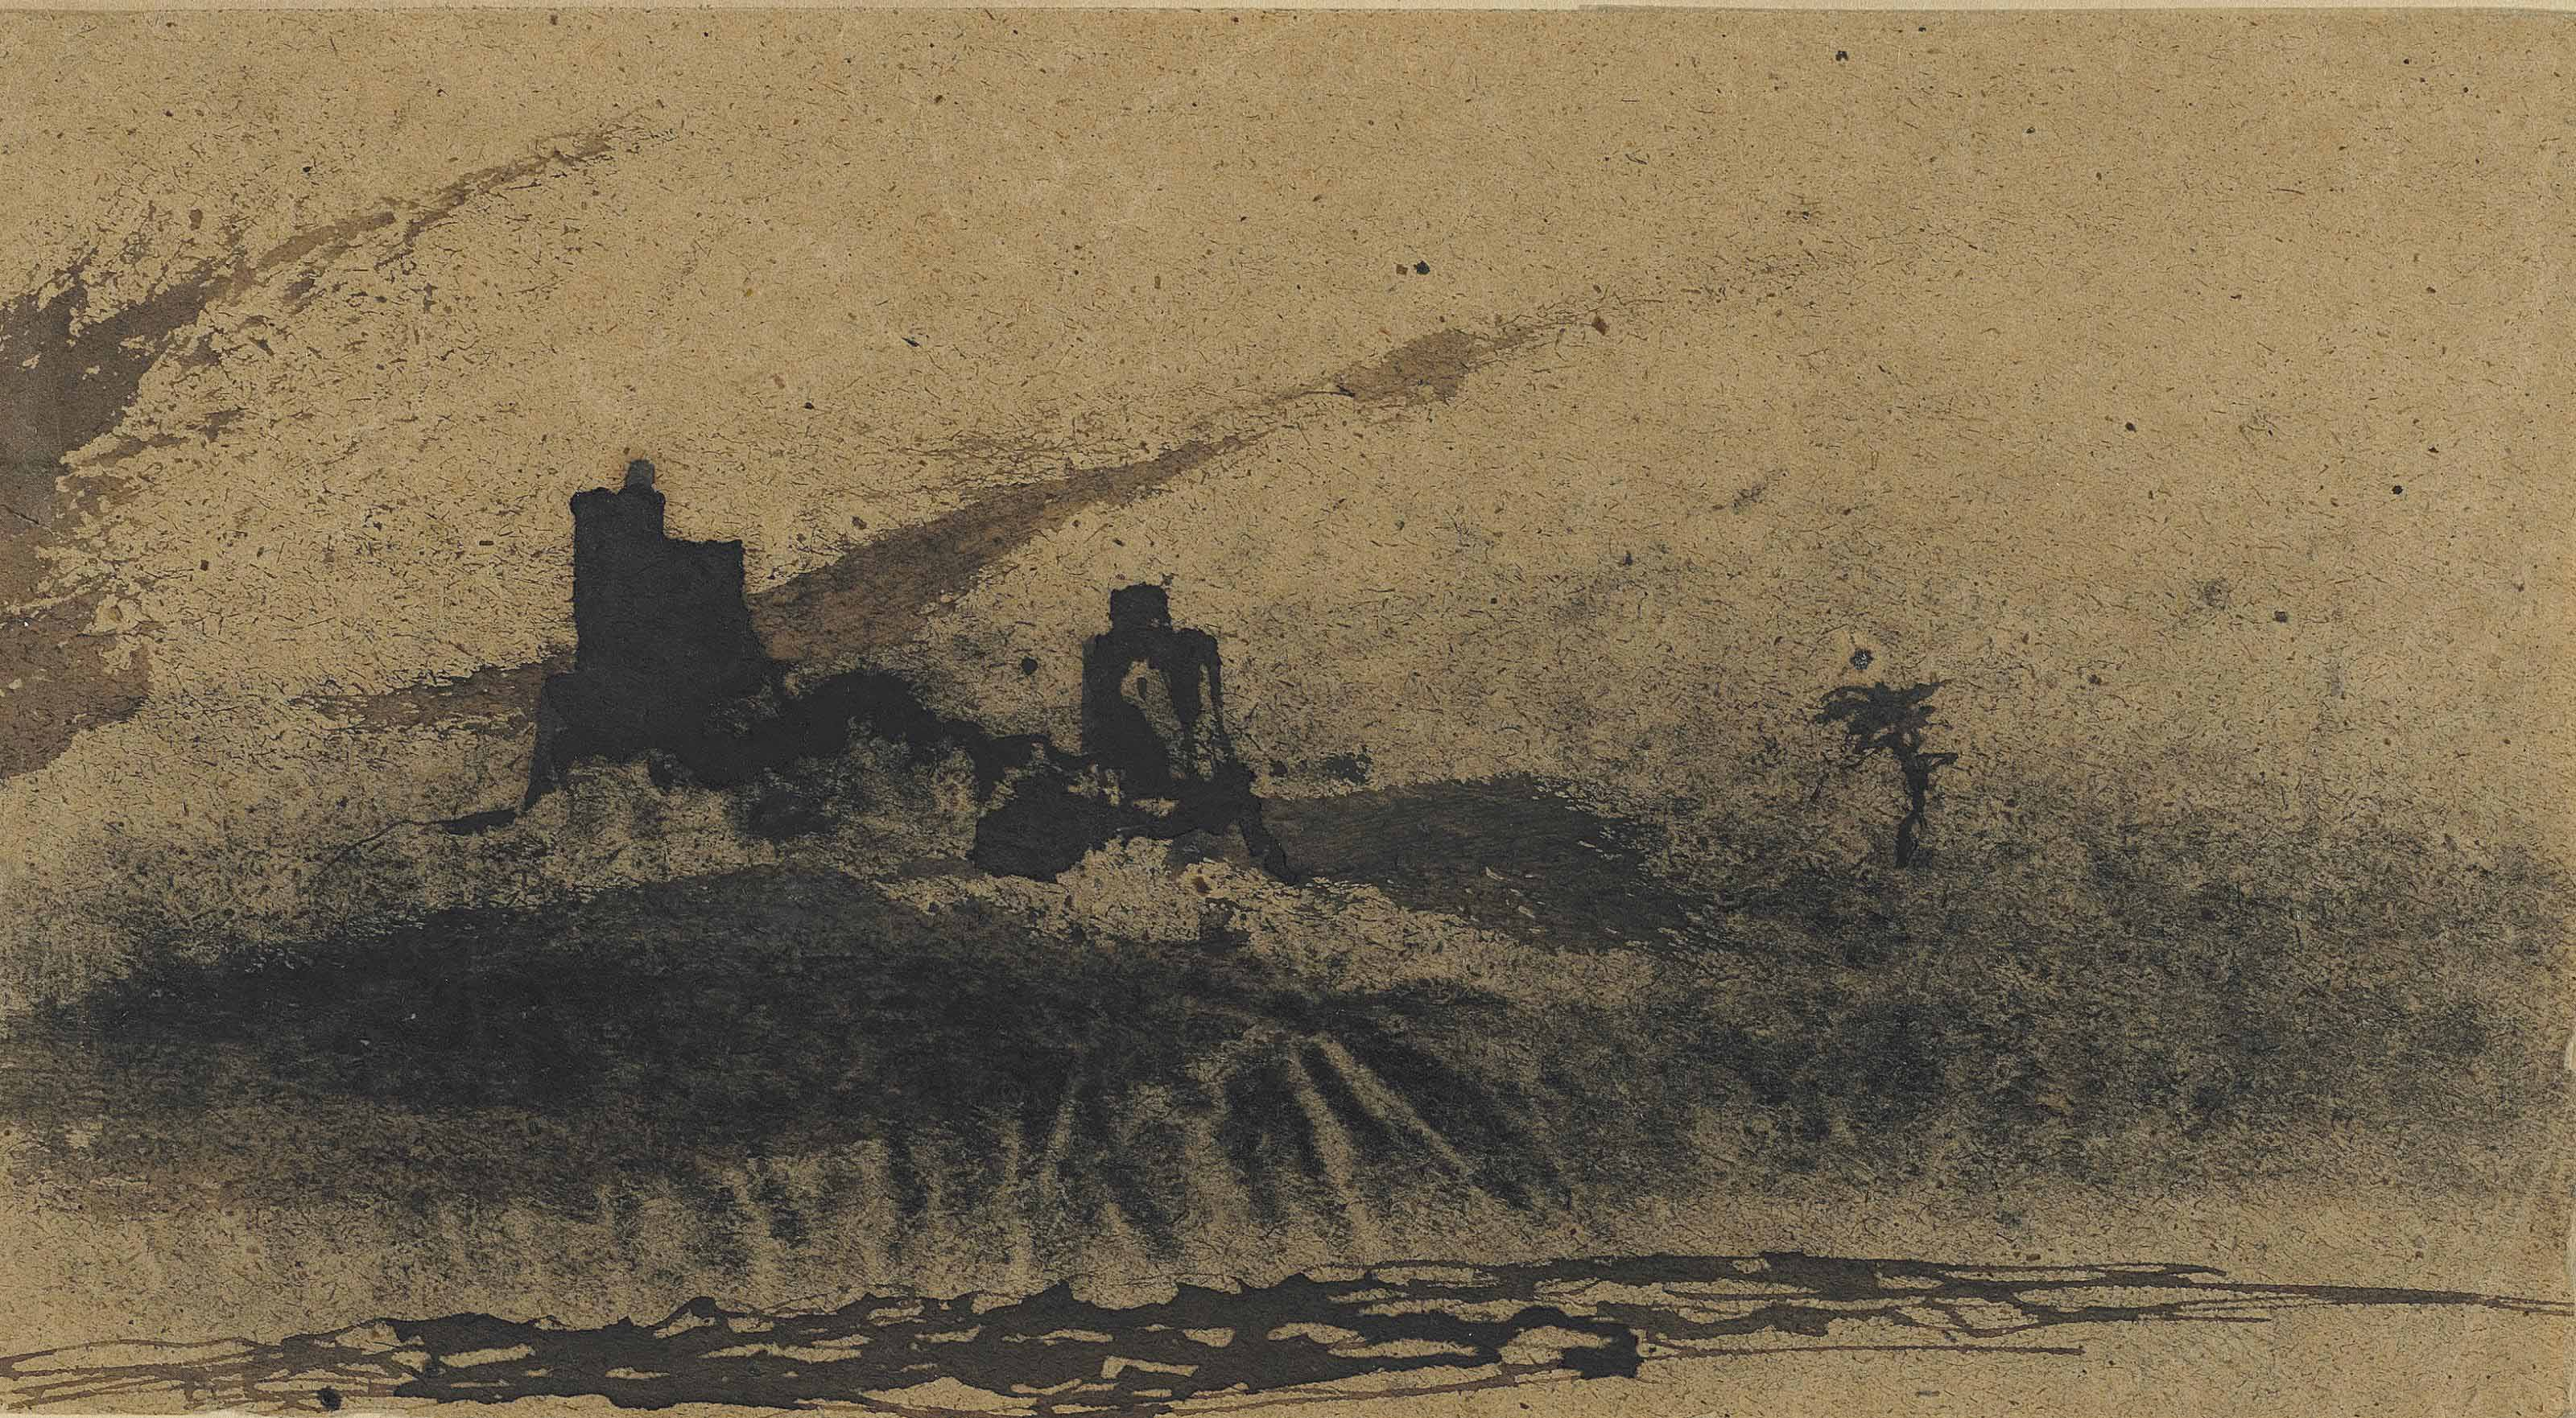 A castle on a cliff